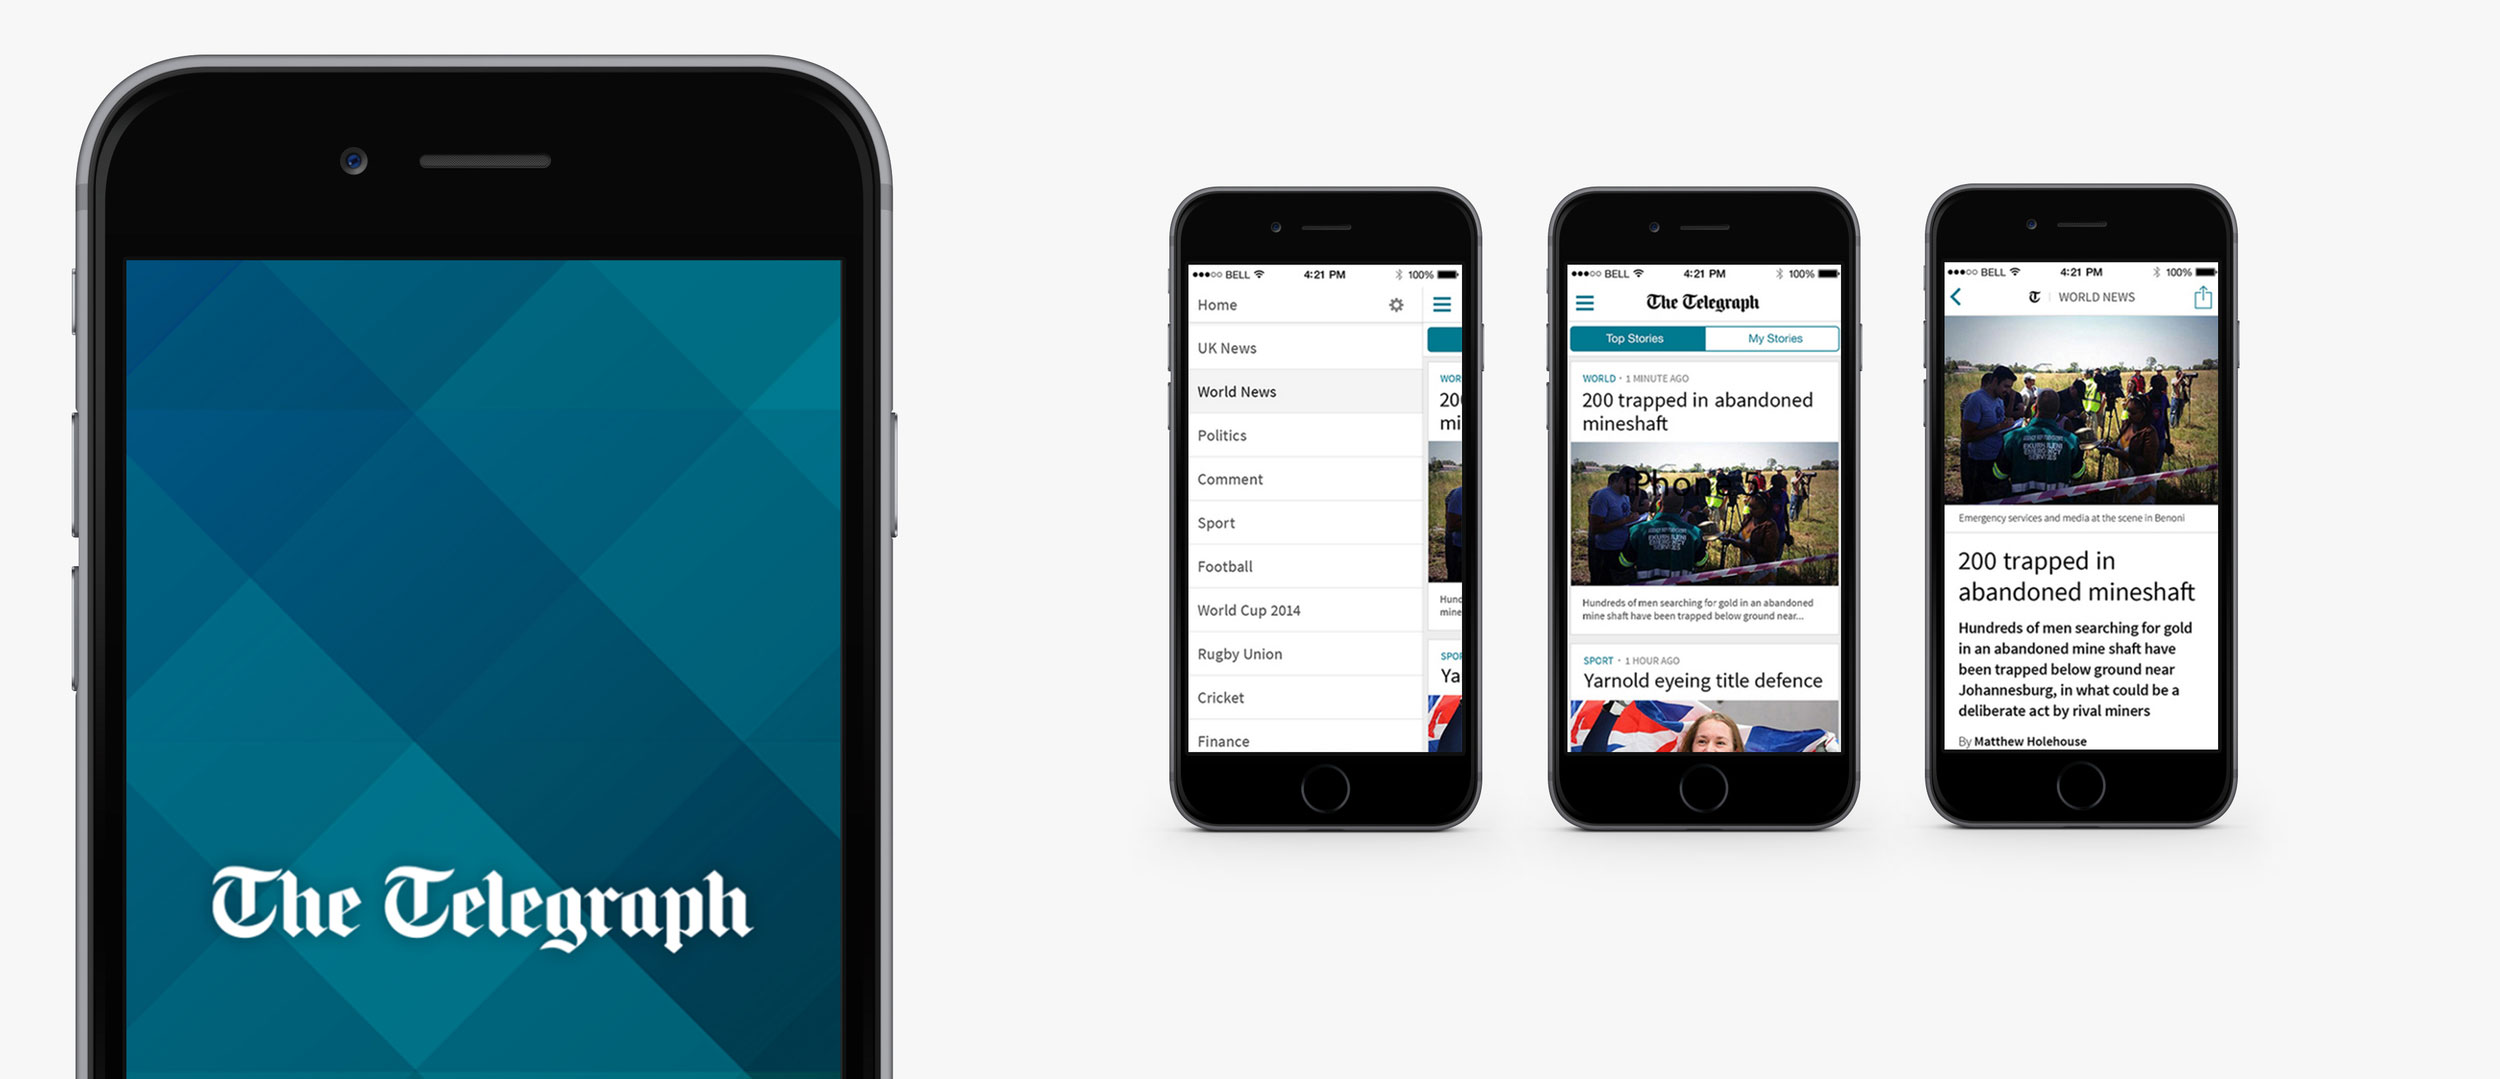 furthermore-ux-design-mobile-phone-casestudy-telegraph